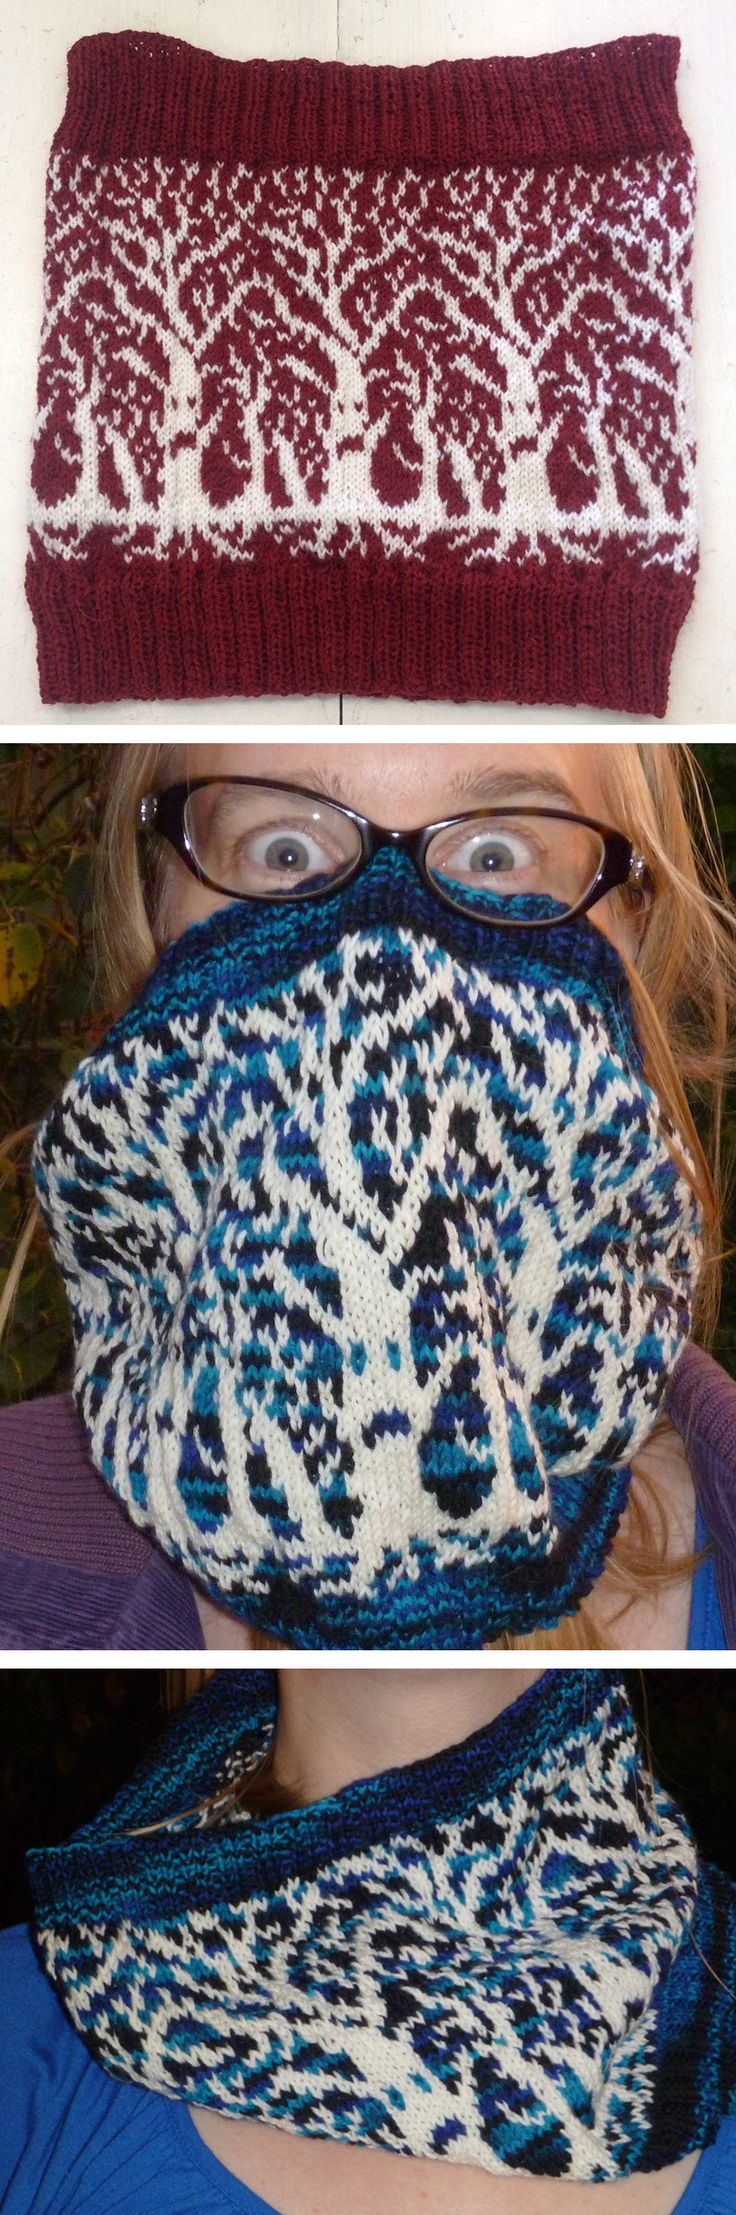 Free Knitting Pattern for Weirwood Cowl inspired by Game of Thrones - A stranded cowl picturing the Weirwood trees from A Song of Ice and Fire and Game of Thrones. Designed by Andrea Krüß-Anders. I like the way it looks just like a pretty graphic pattern when draped around the neck. Available in English and German. Pictured projects by JennyLee1011 and ajtho1